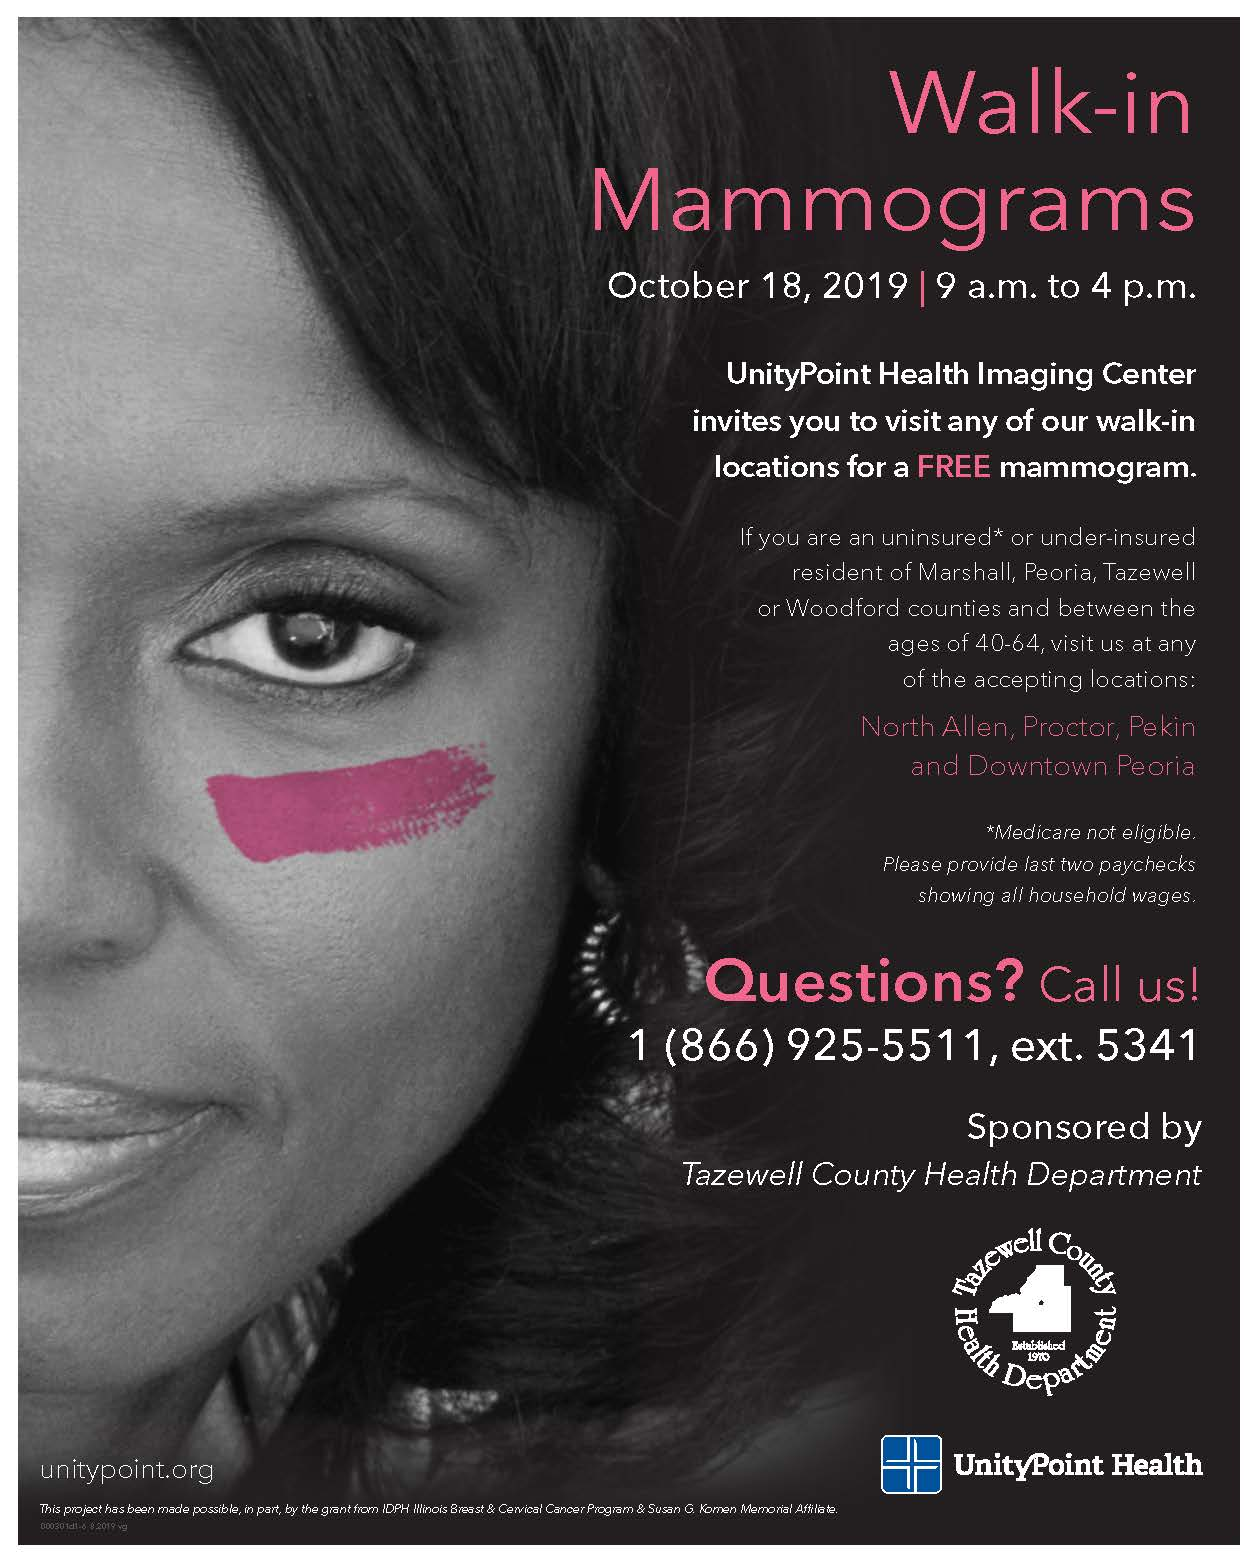 000301d1-6_Breast Cancer Campaign FLYER